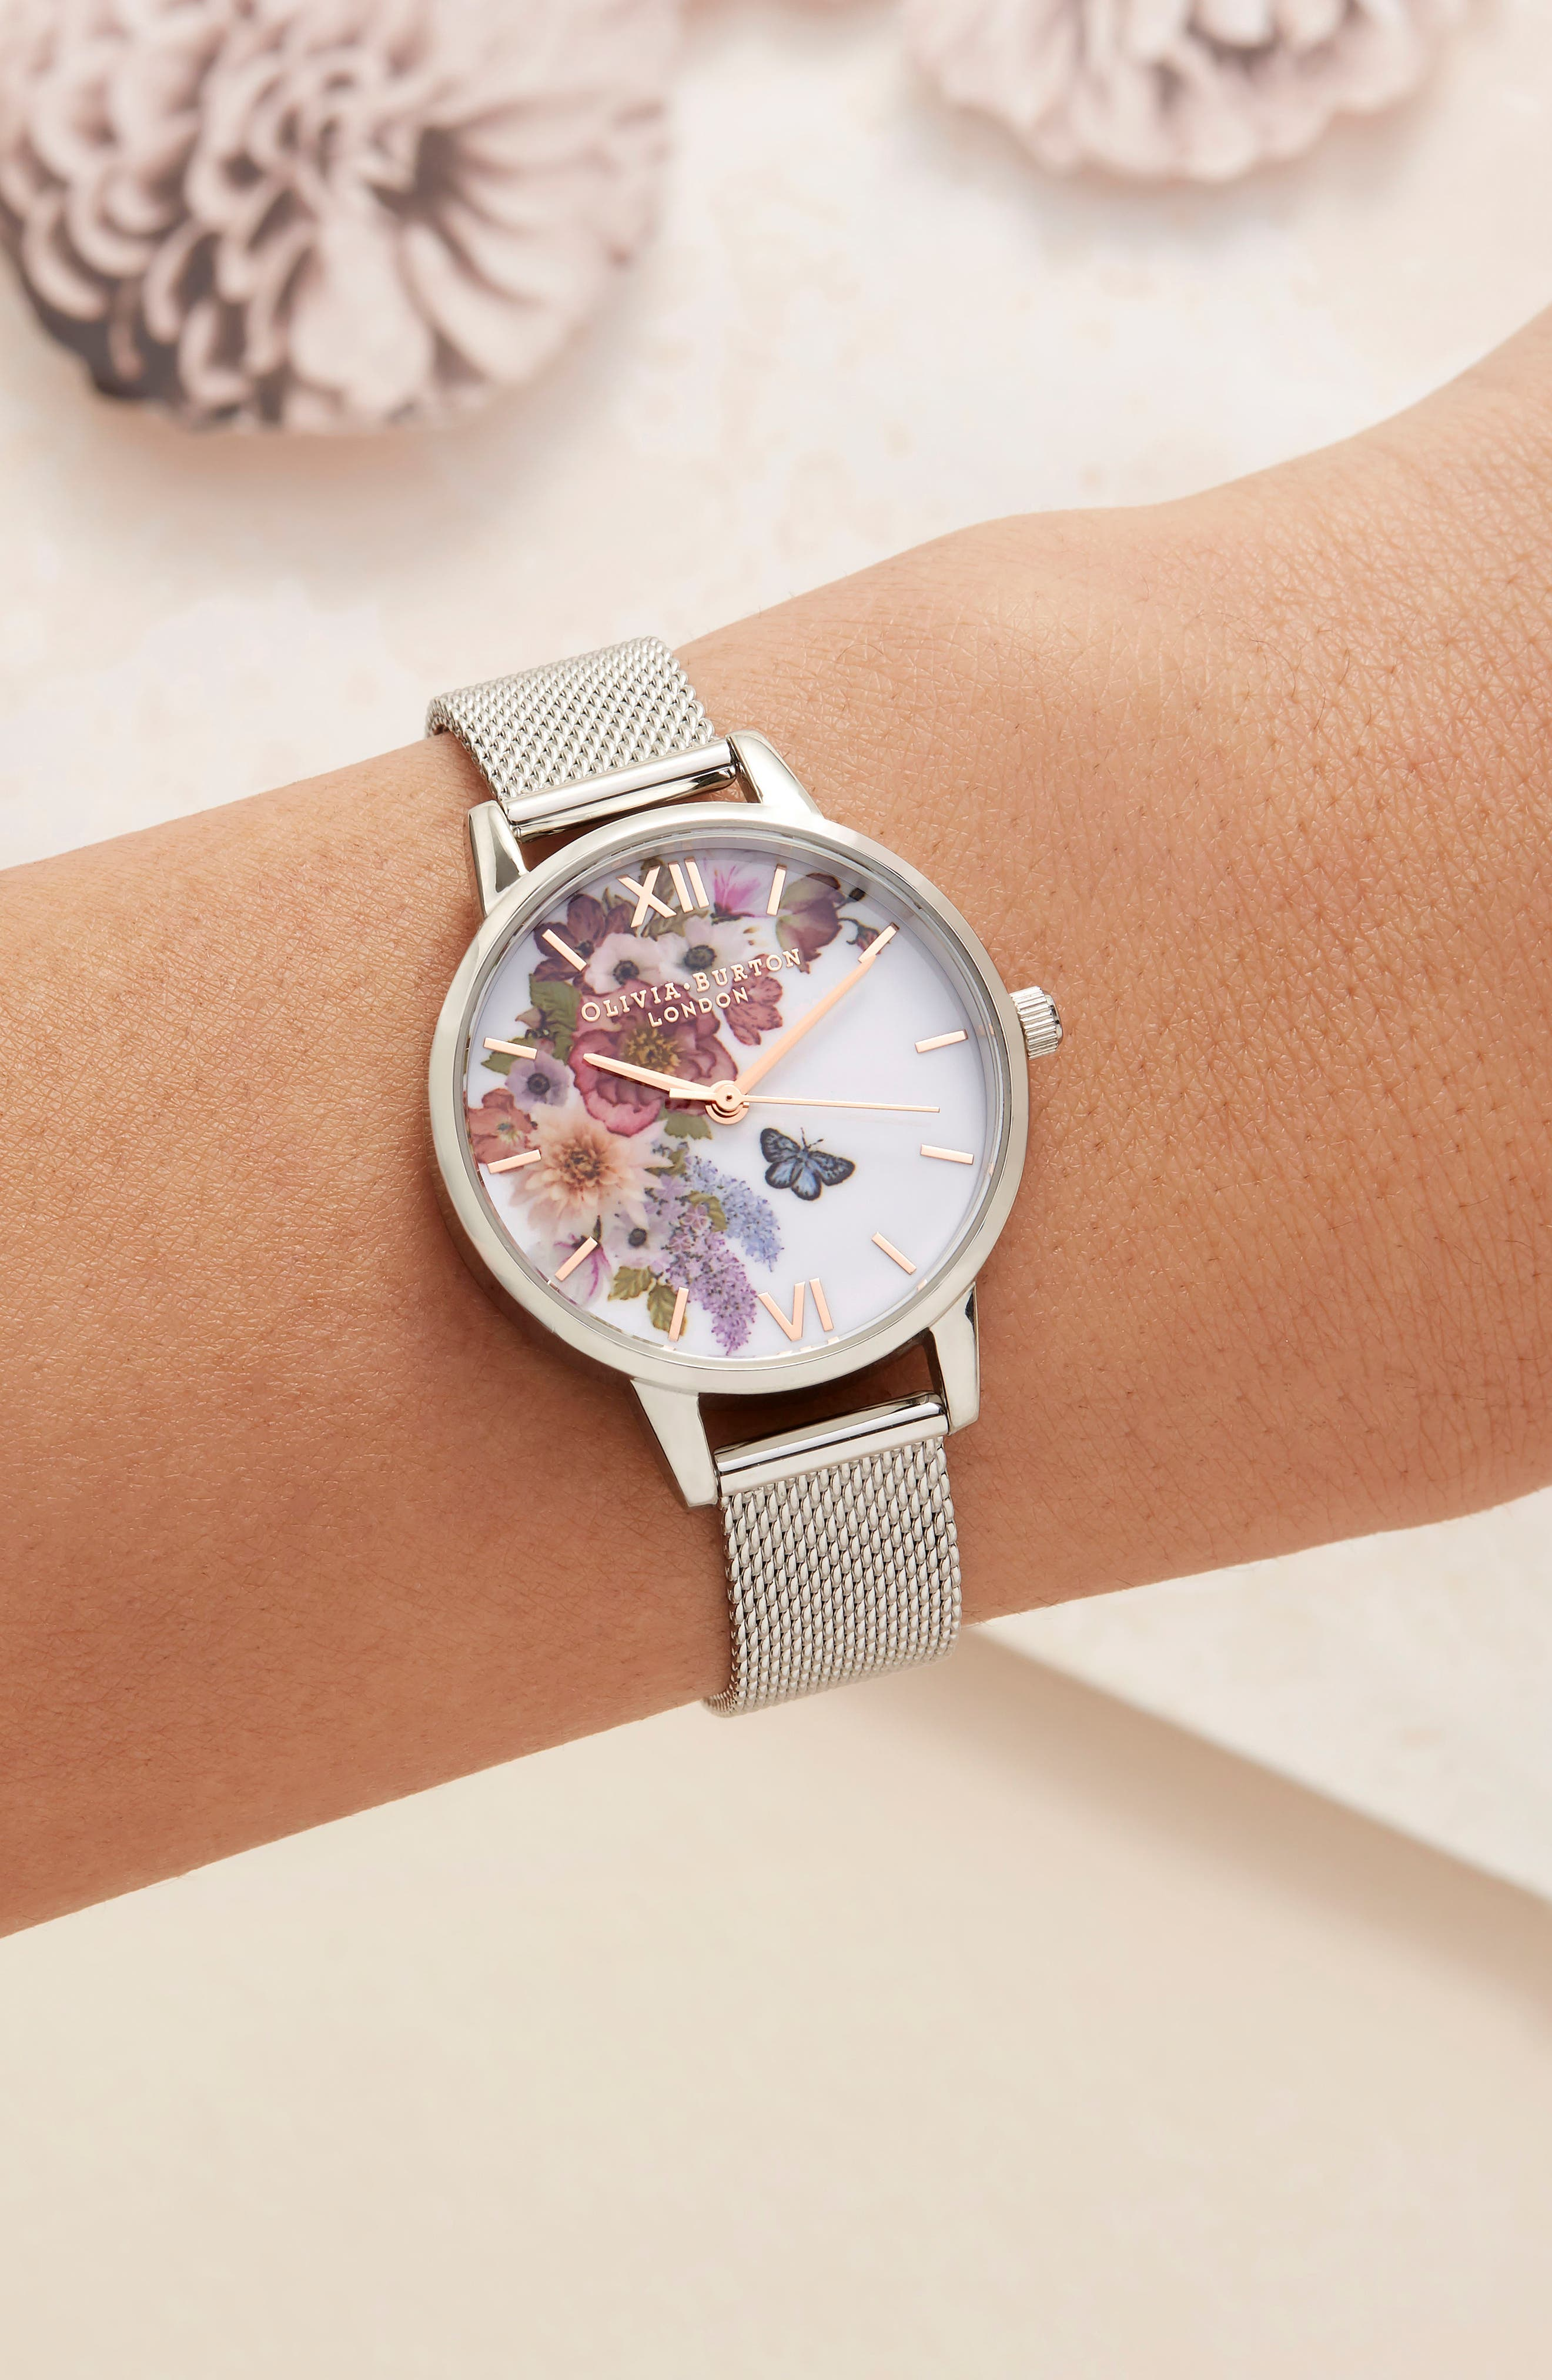 Enchanted Garden Mesh Strap Watch, 30mm,                             Alternate thumbnail 7, color,                             SILVER/ FLORAL/ ROSE GOLD